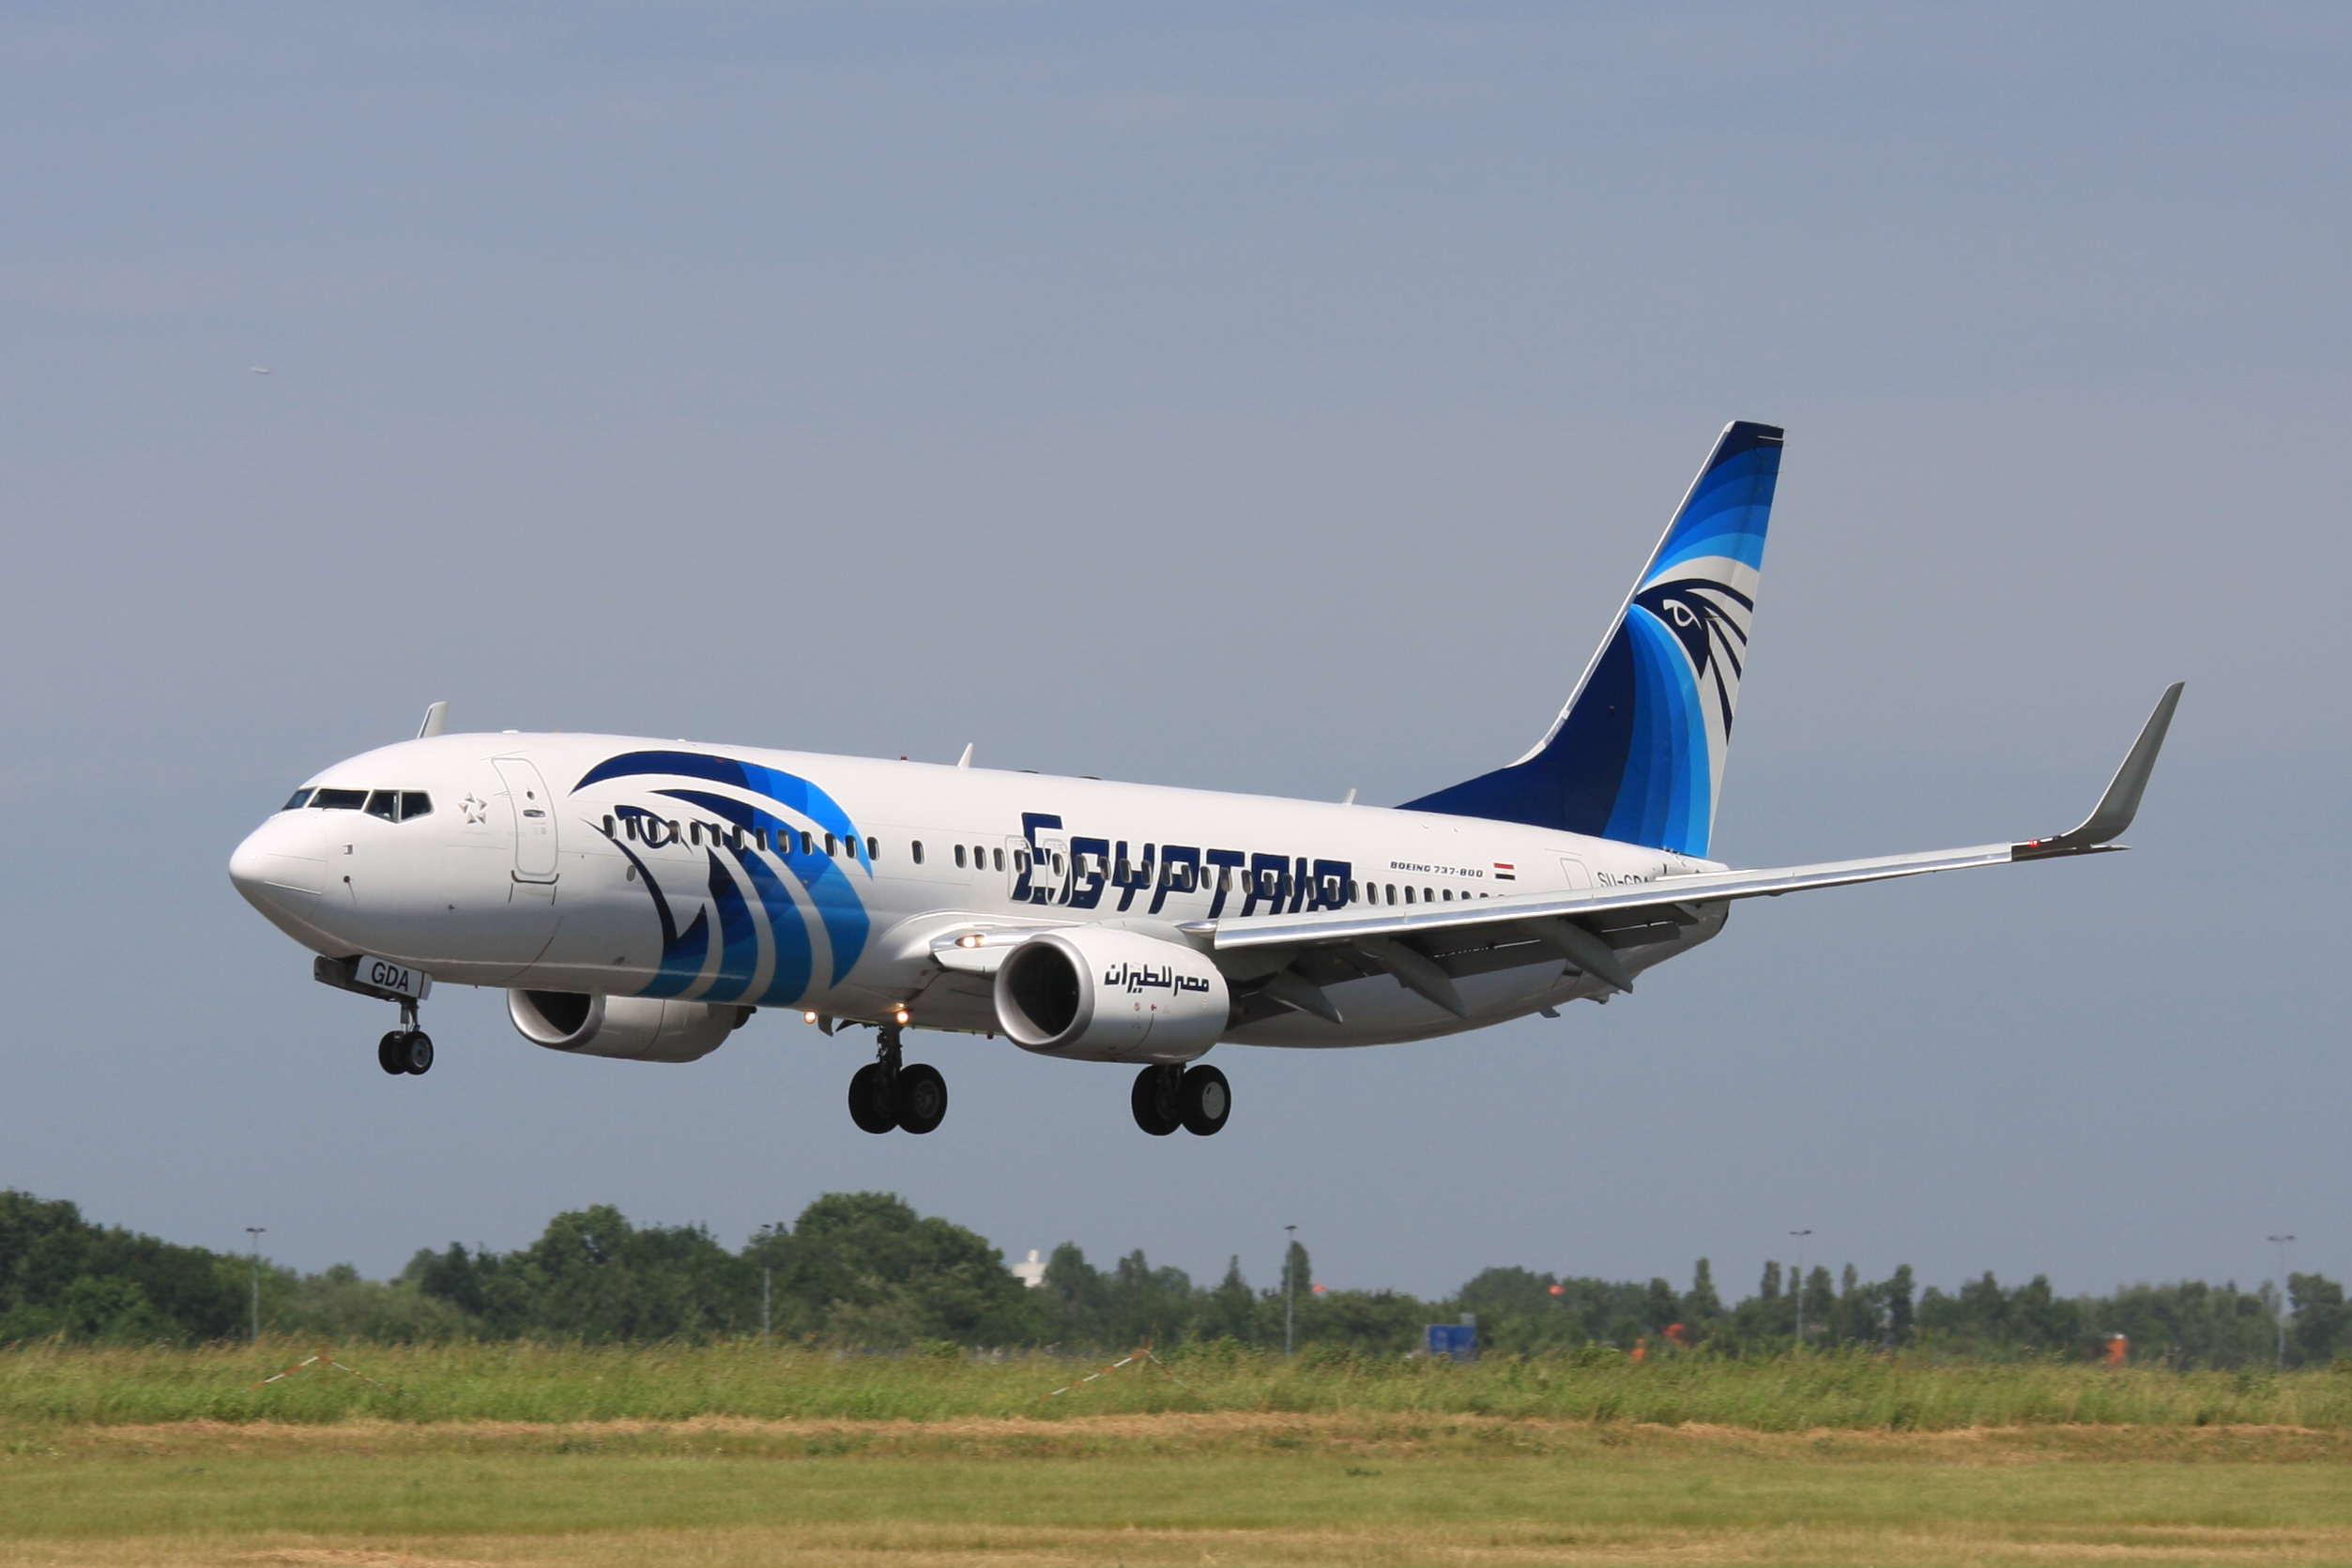 BREAKING: Fate Of Missing EgyptAir Flight Reportedly Discovered 1 6 0